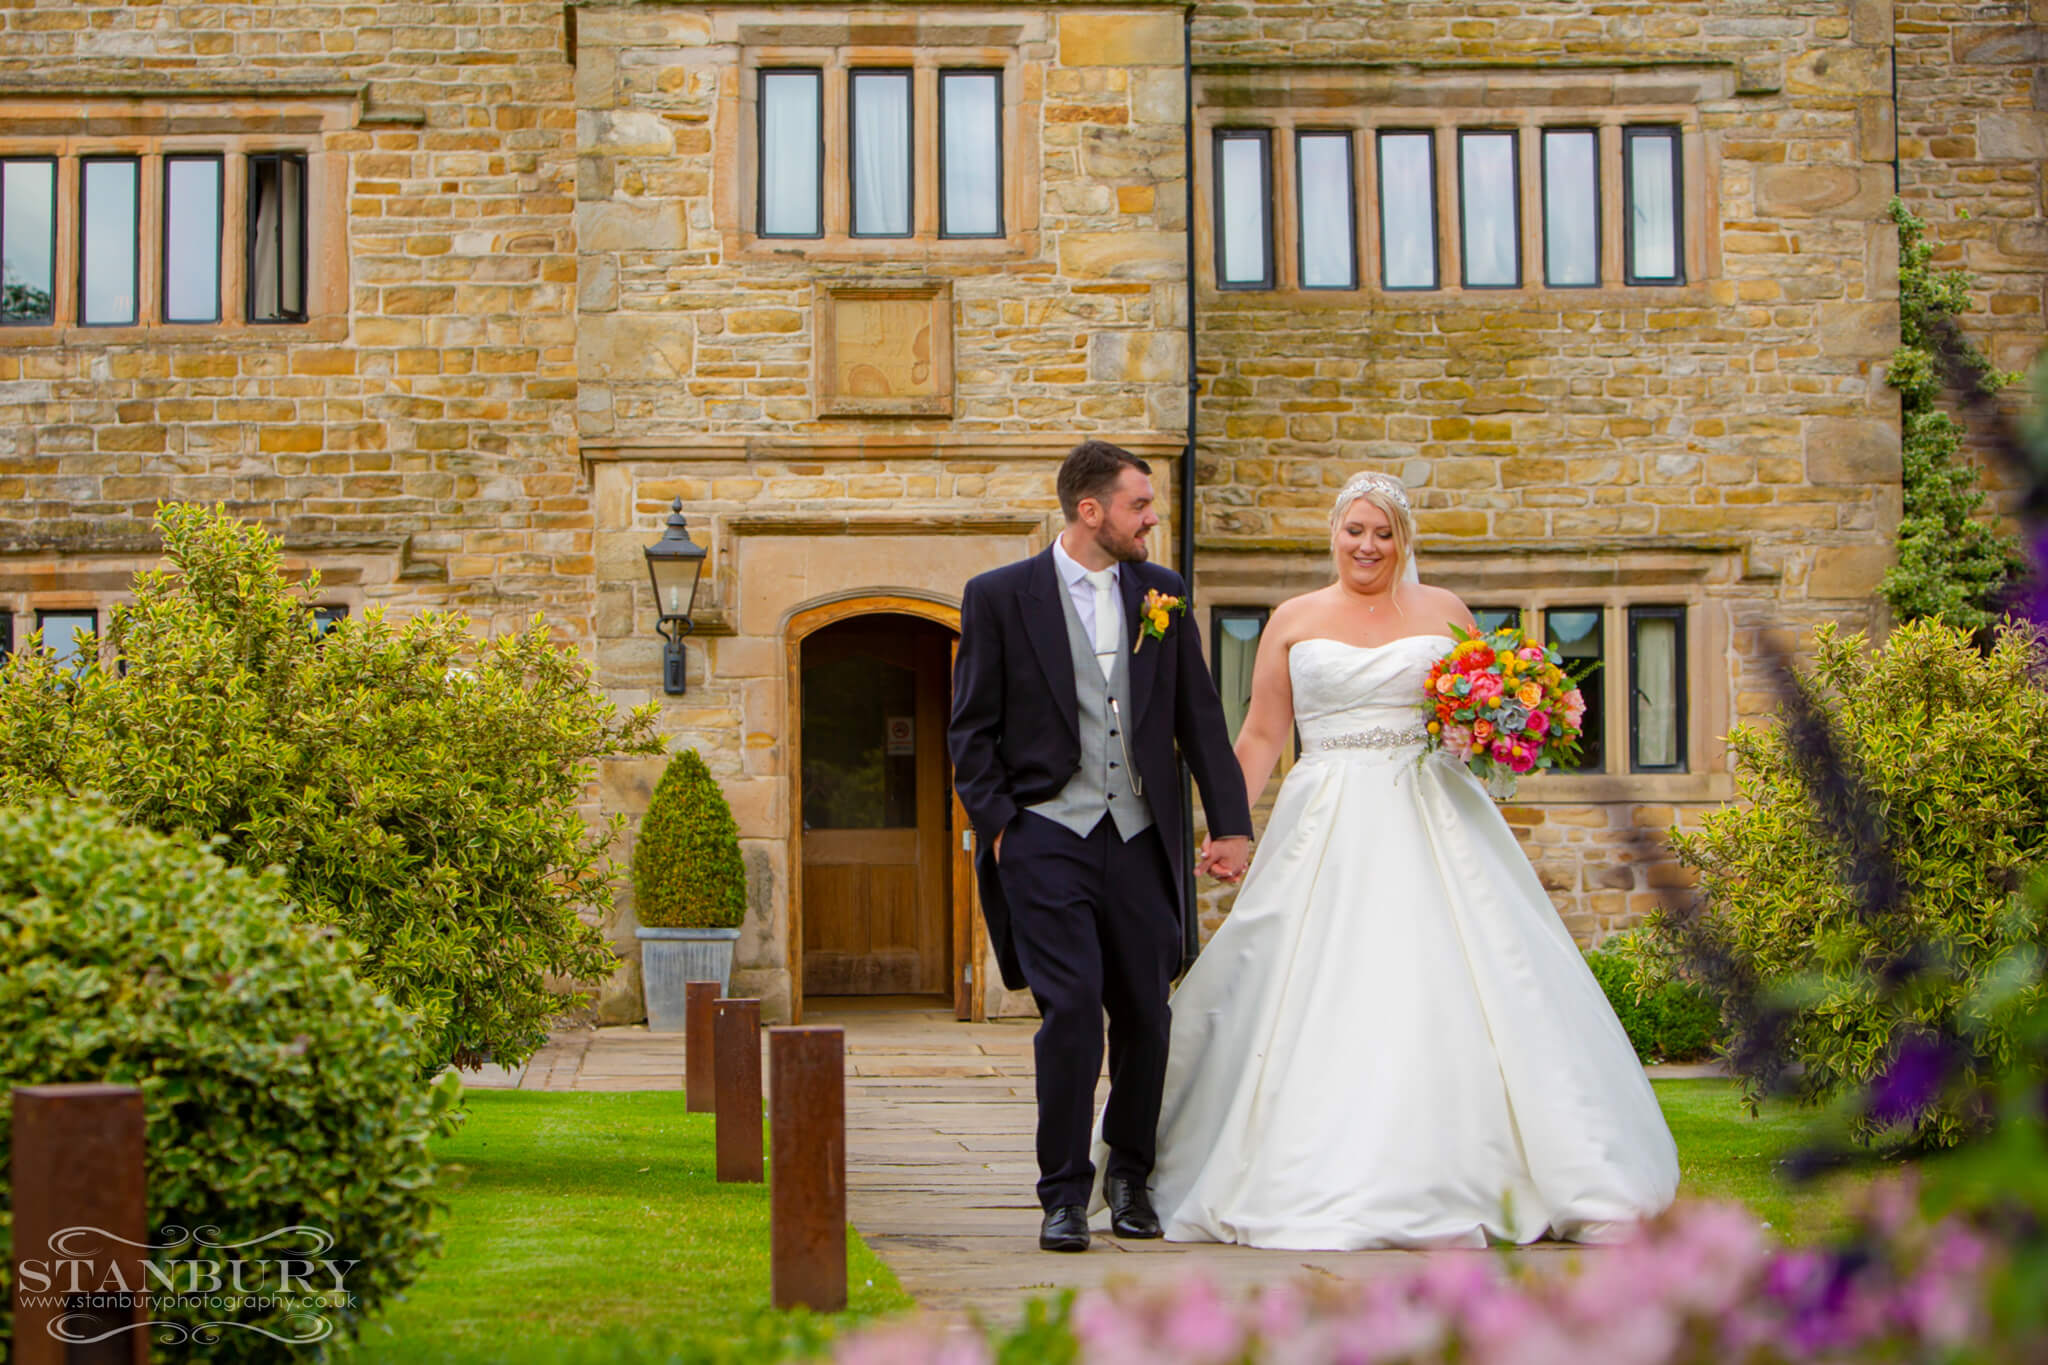 best-lancashire-wedding-photographers-stanbury-photography-029